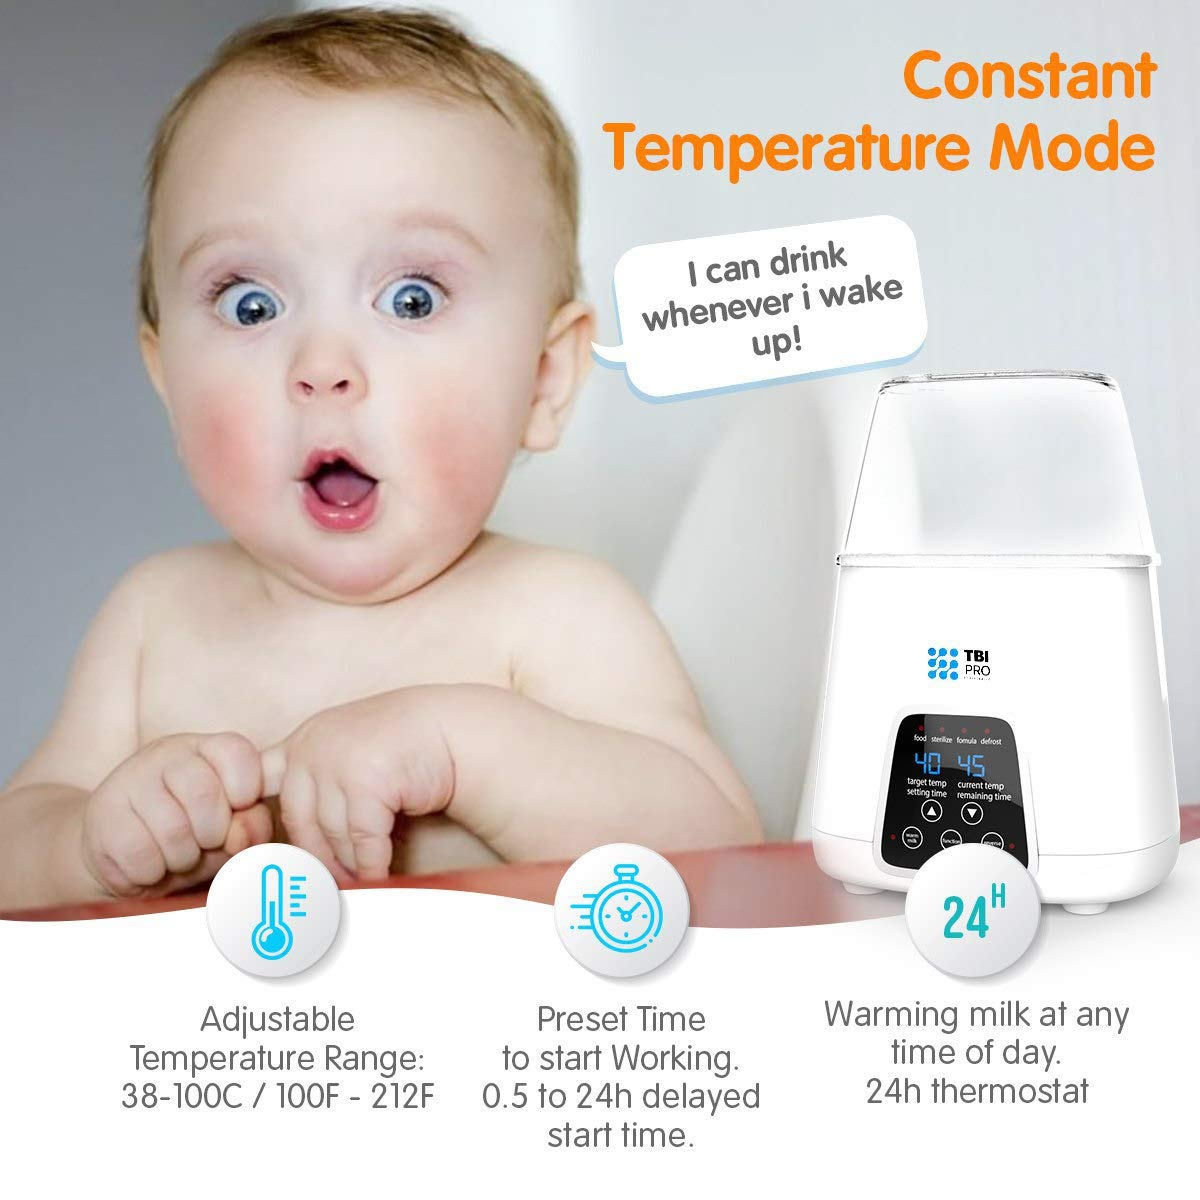 New 2019 Bottle Warmer 5-in-1 BPA-Free Premium Quick Baby Bottle Warmer and Sterilizer with Timer Breastmilk and Formula Defrosting and Heating Settings for Baby Food